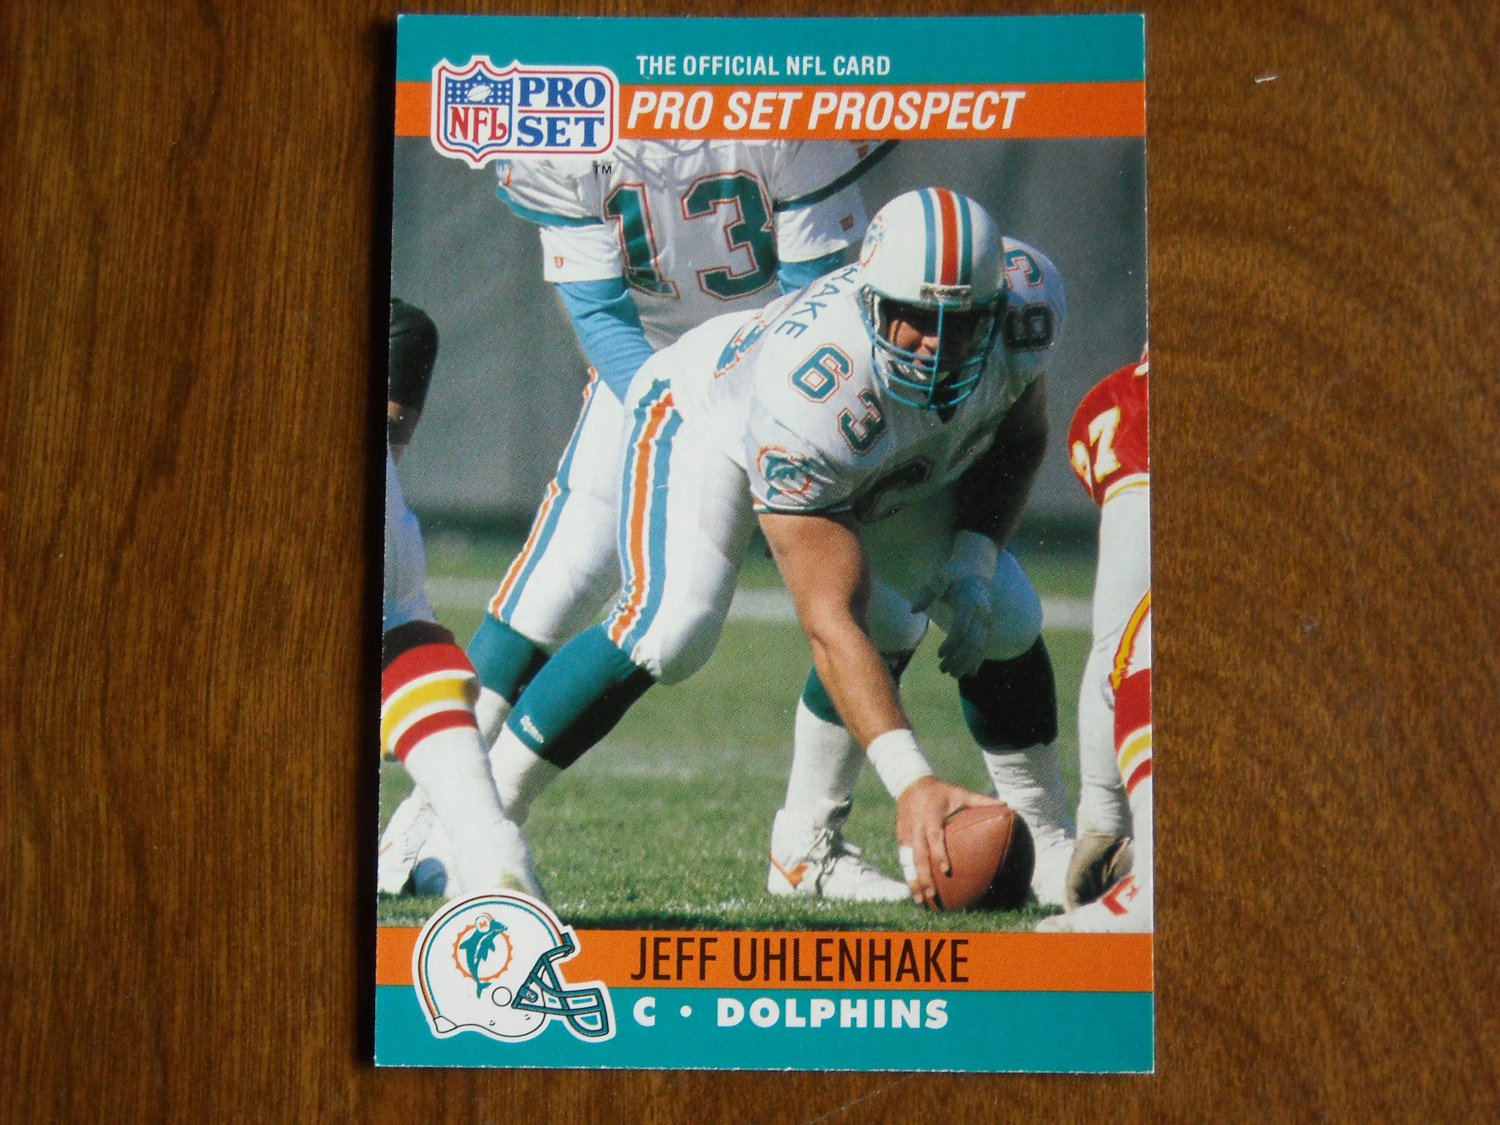 Jeff Uhlenhake Miami Dolphins #737 1990 NFL Pro Set Football Card